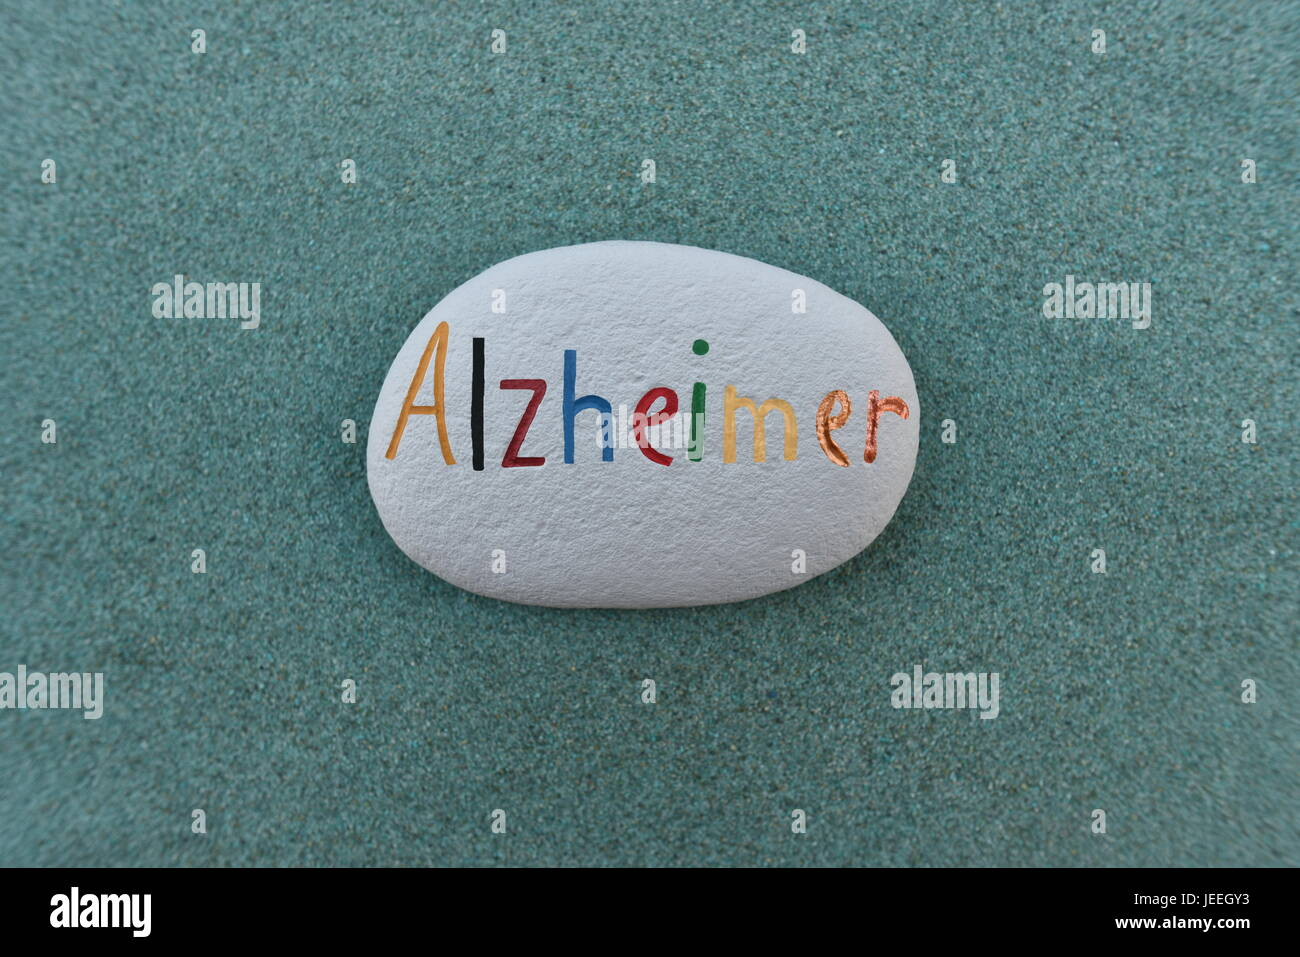 Alzheimer disease name painted on a stone - Stock Image